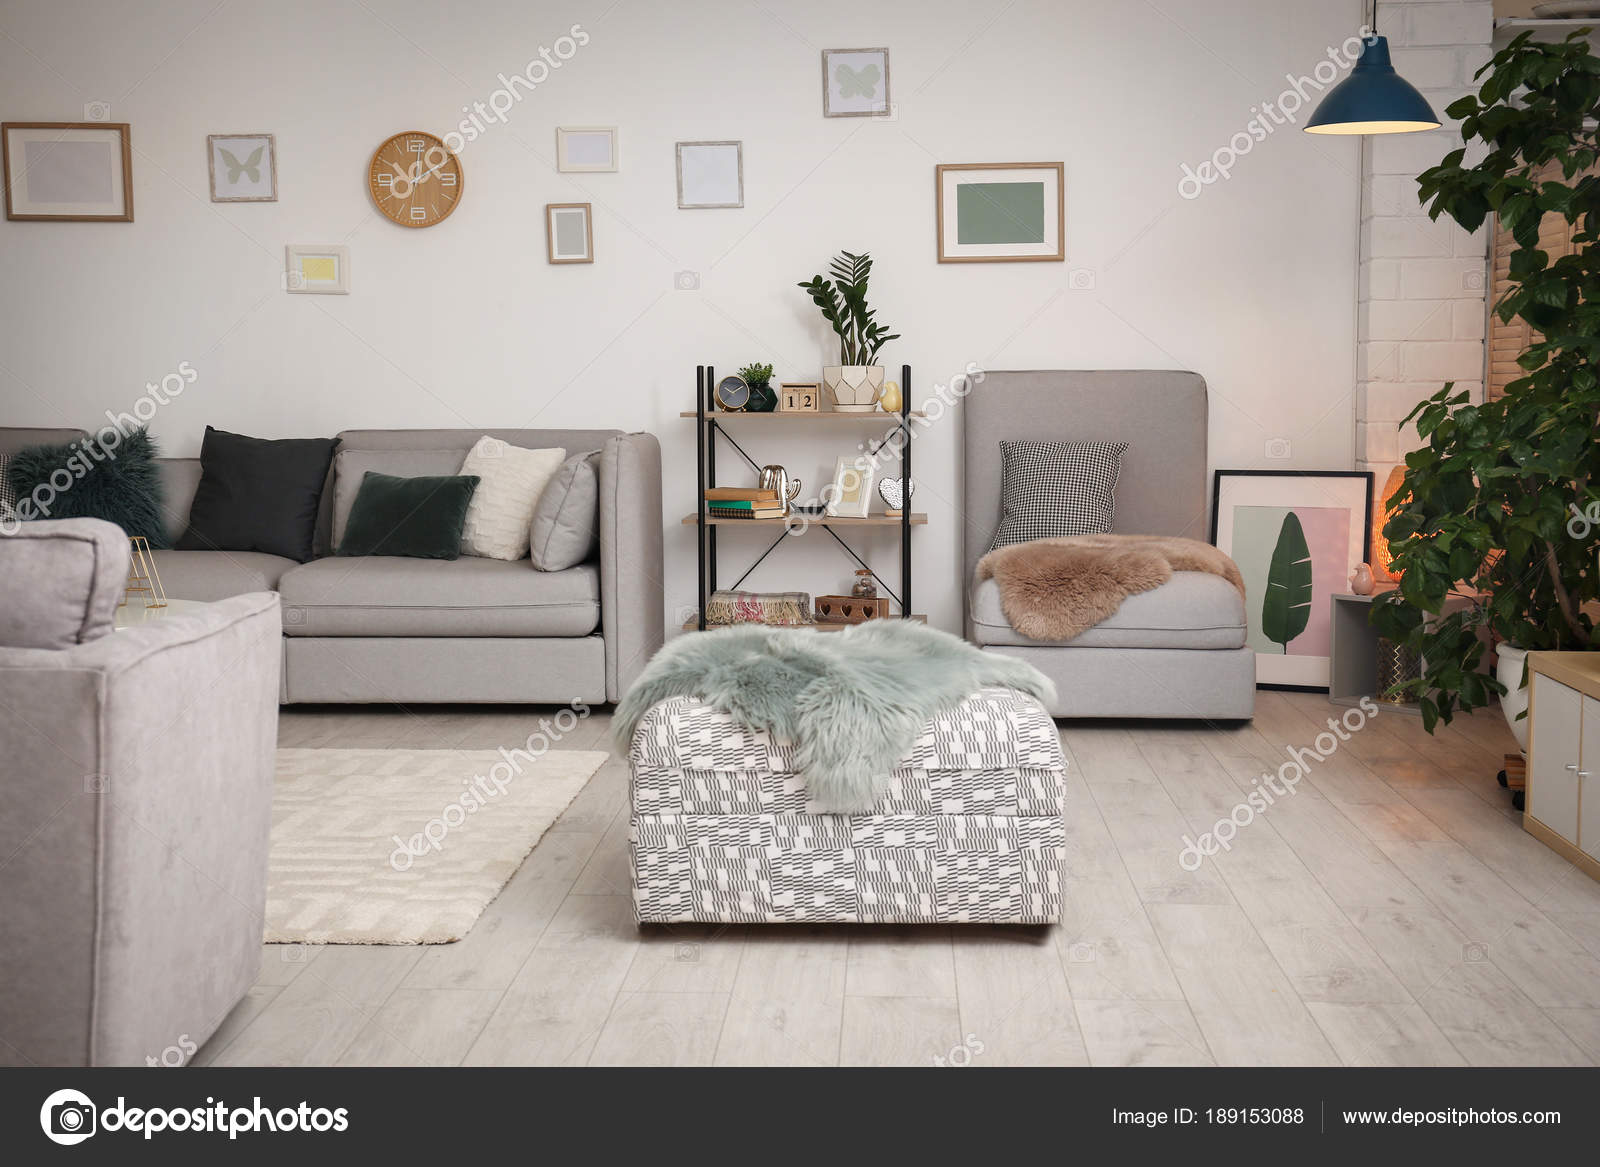 Modern Living Room Interior With Comfortable Sofa And